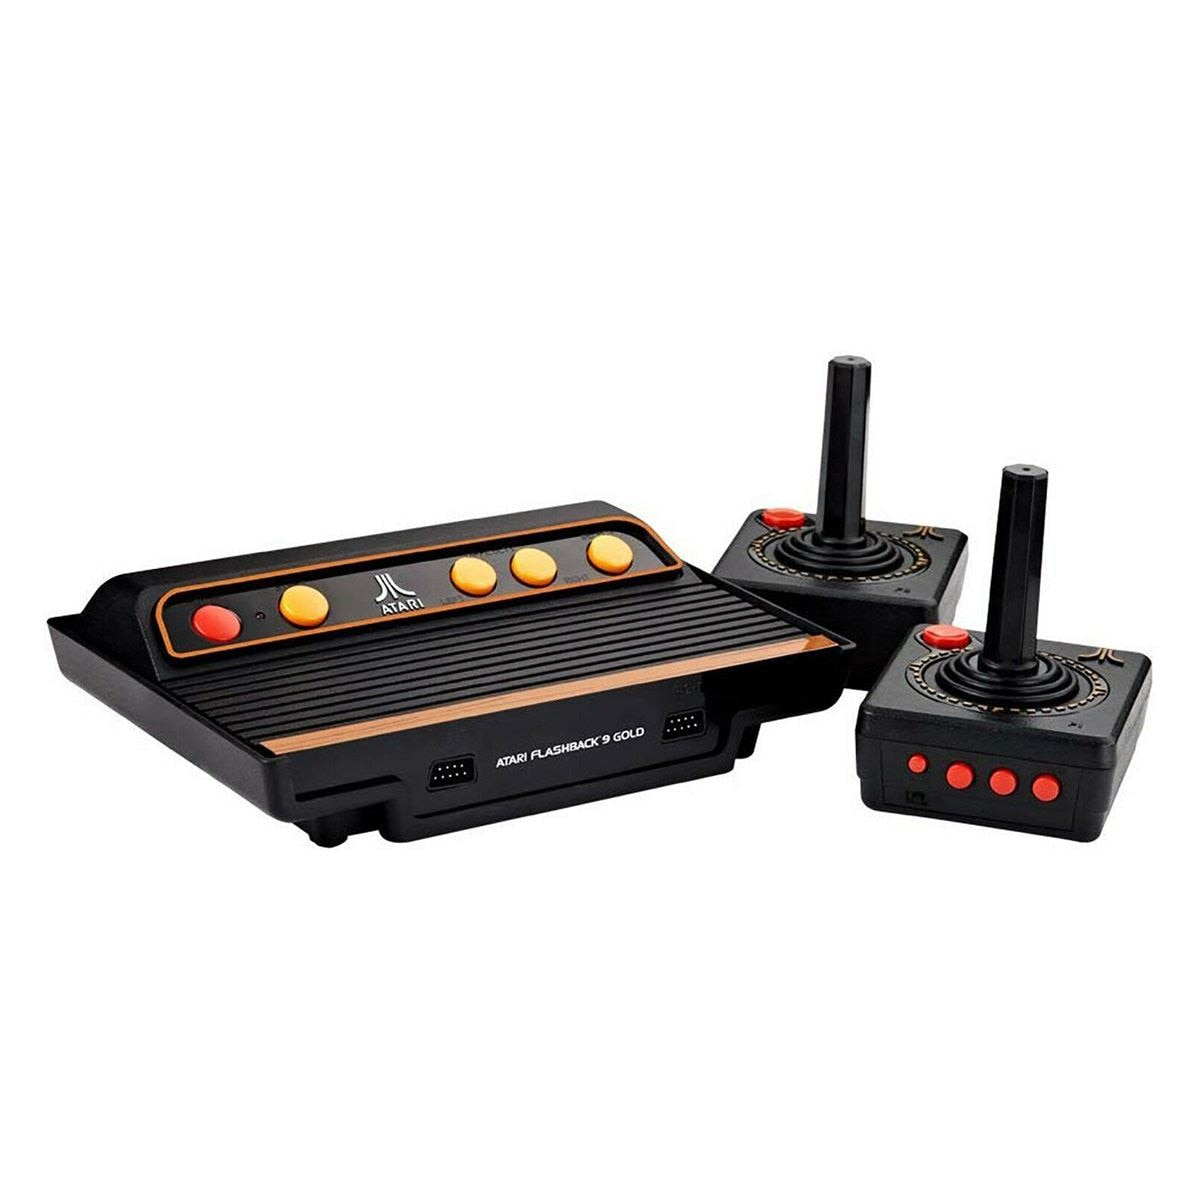 Consola Atari Flashback HD 9 Gold